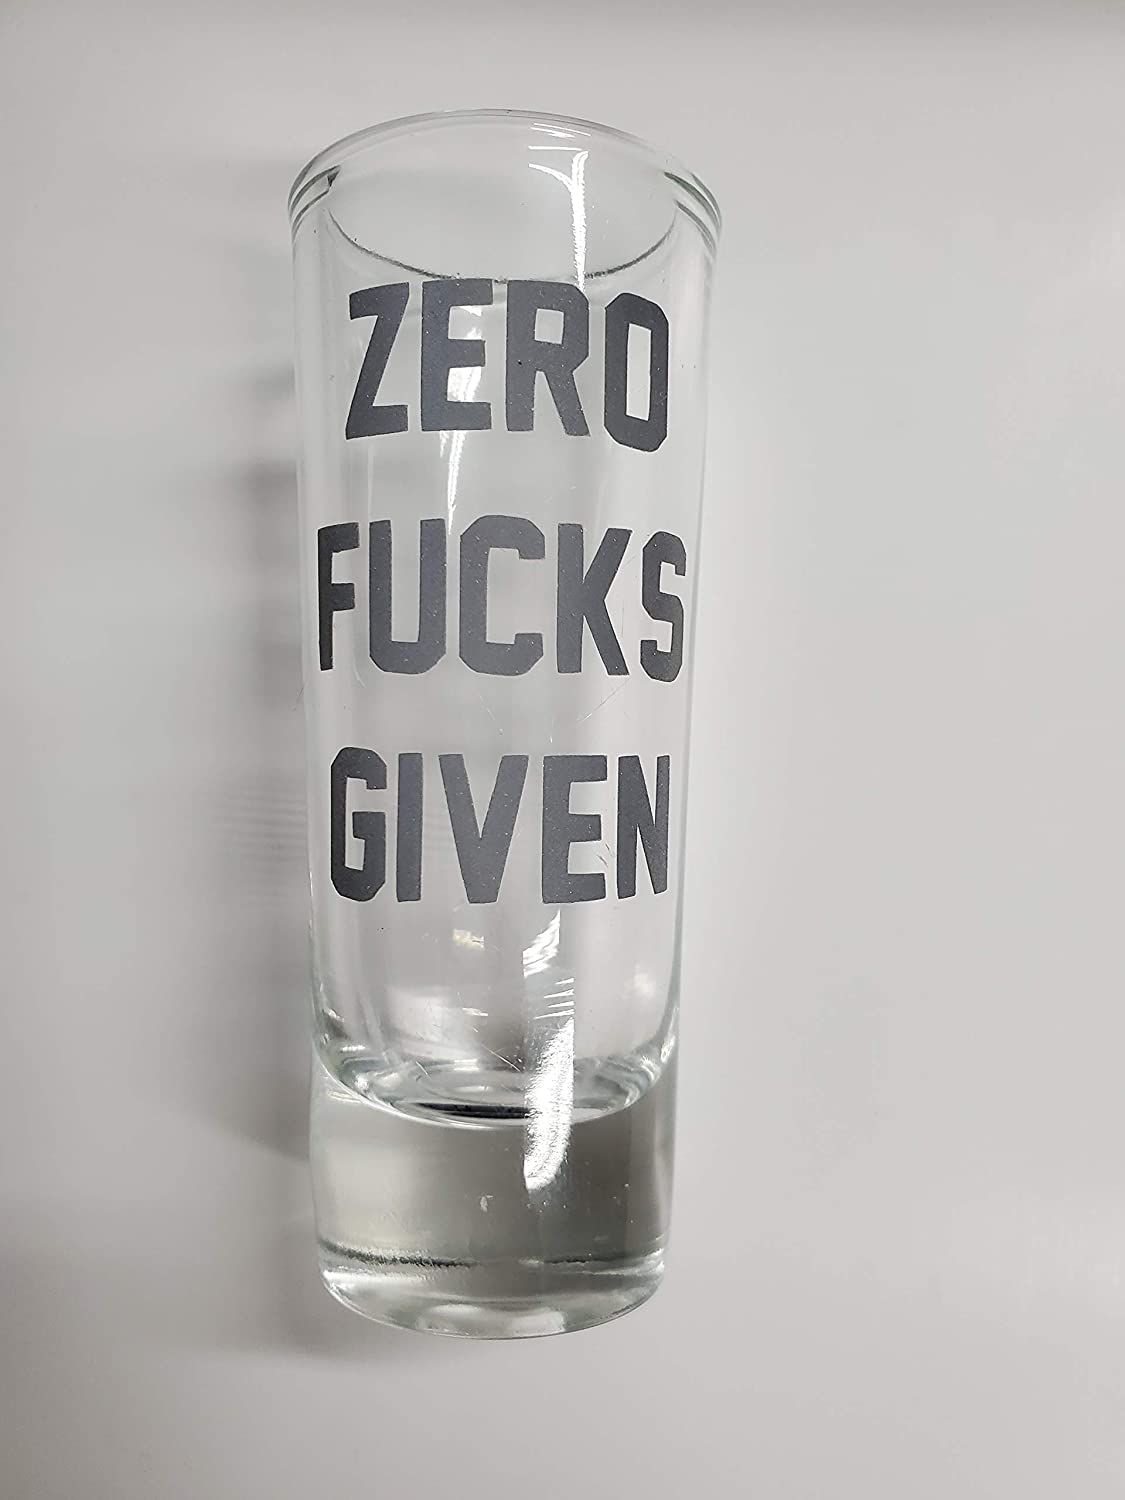 Zero Fucks Given Stiletto Shot Glass REFLECTIVE Coffee Mug Decal Vinyl Sticker Whiskey Tequila Rum Shots Drinking and party enthusiasts Custom